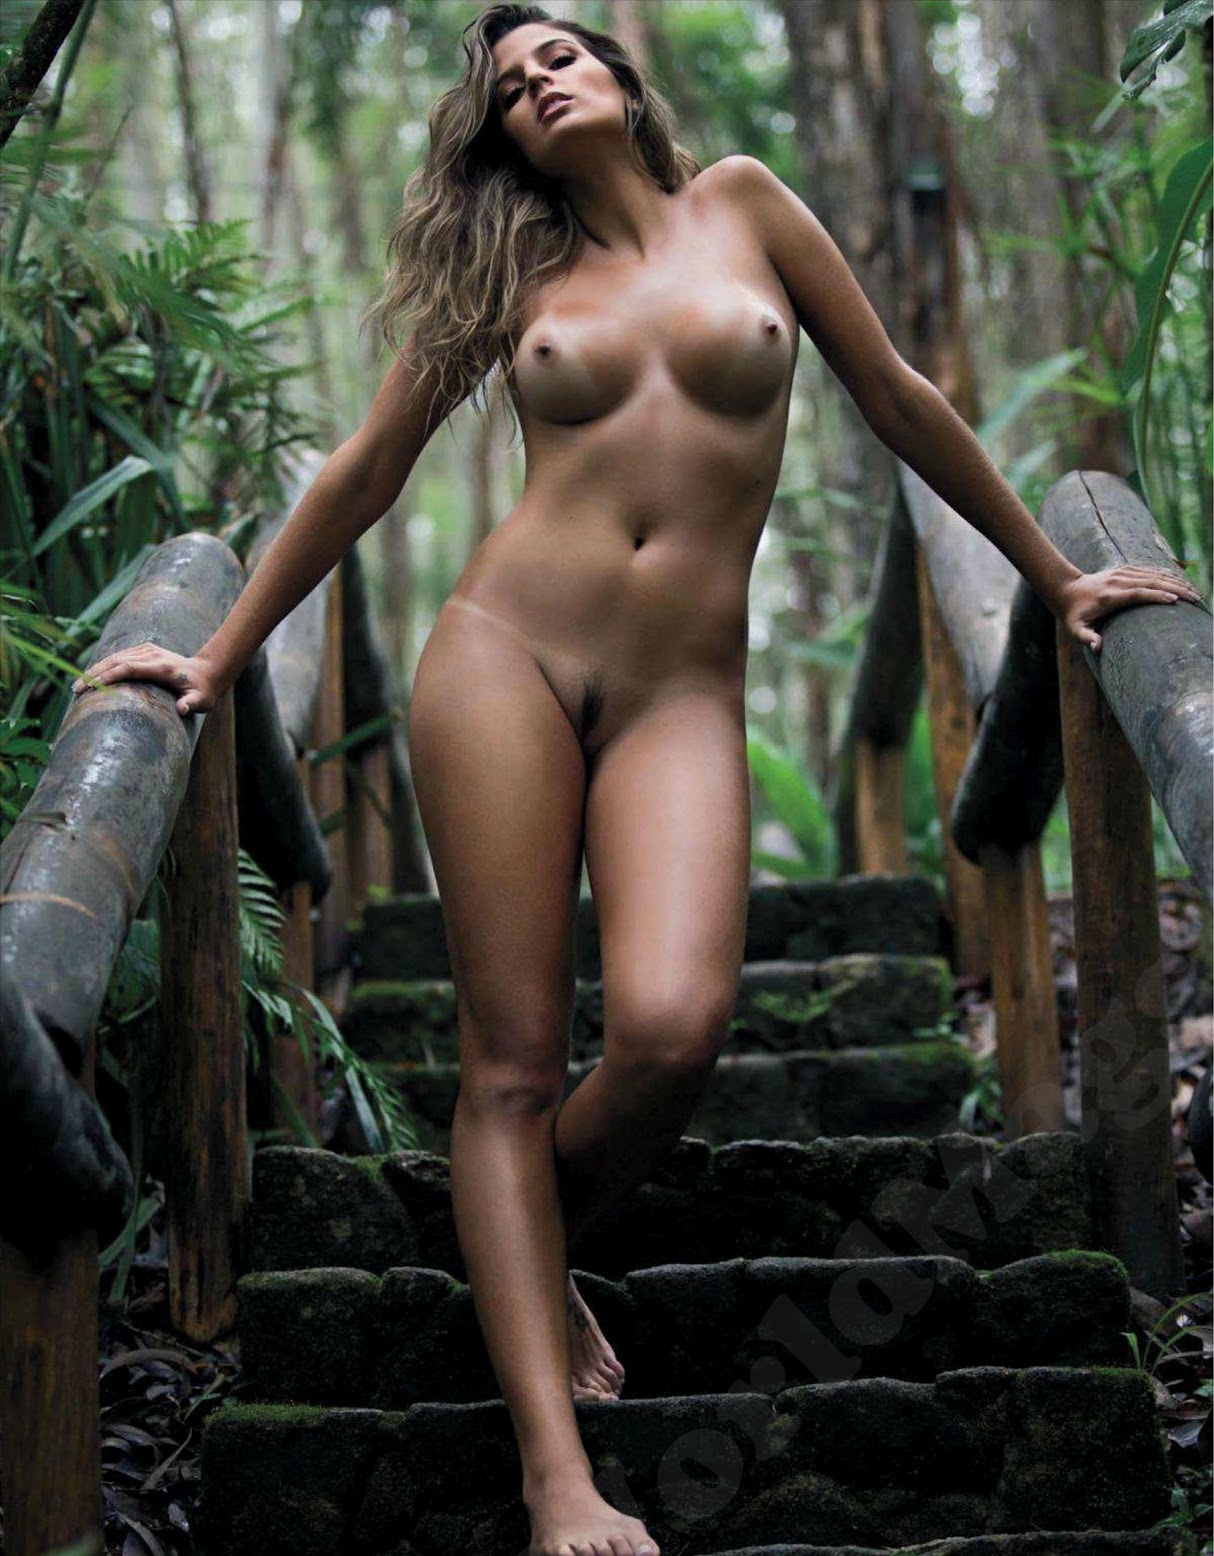 Hot brazilian woman naked